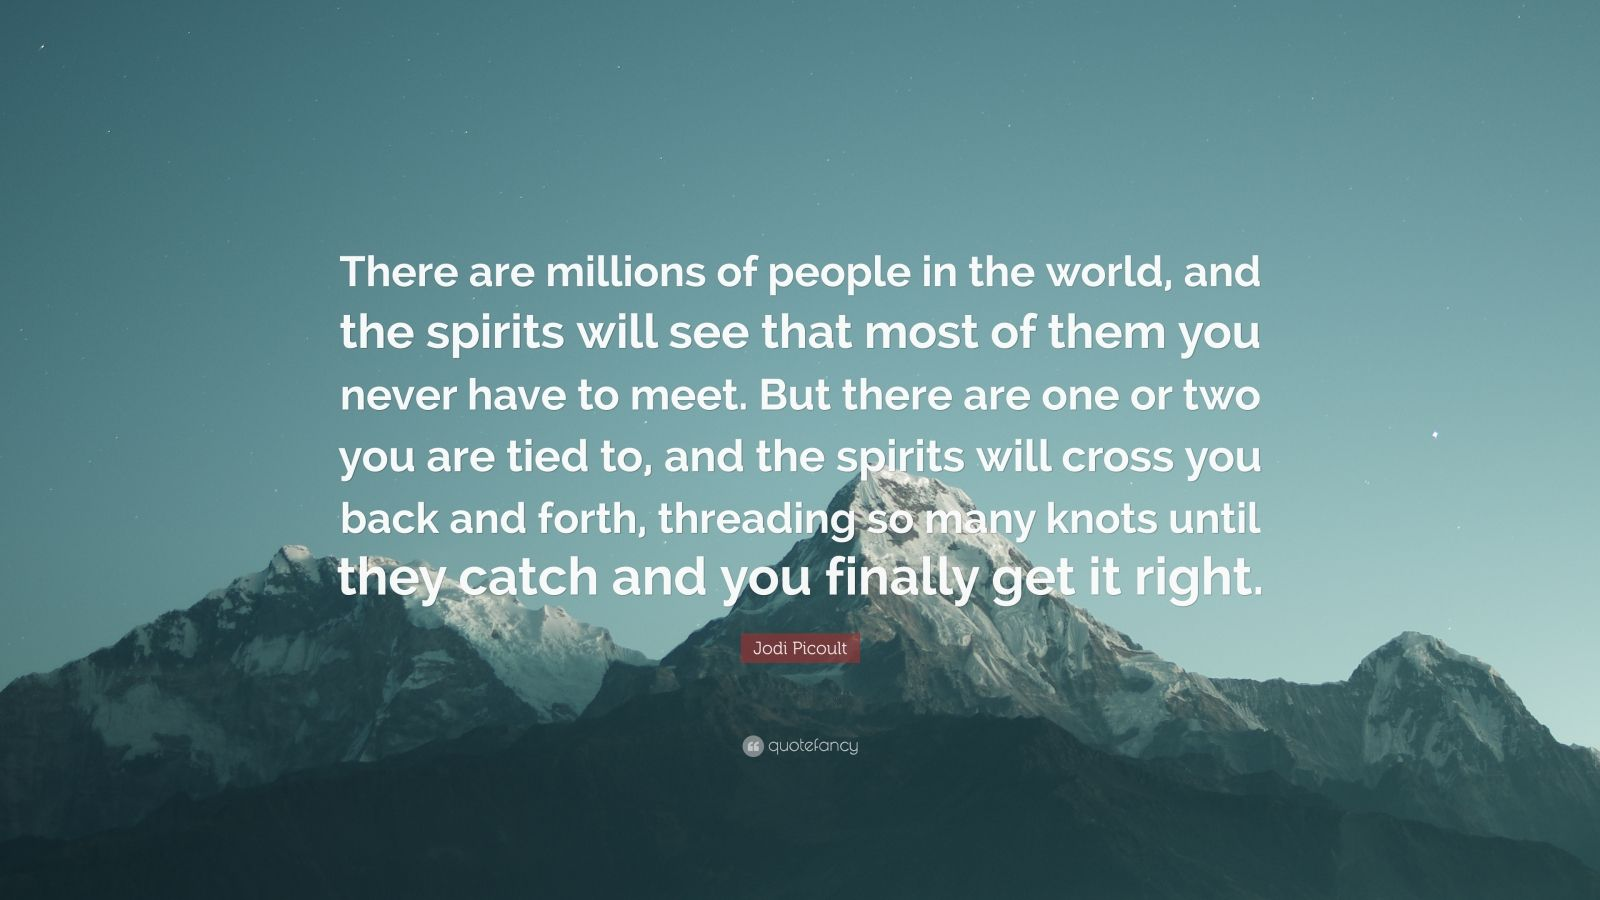 """Jodi Picoult Quote: """"There are millions of people in the world, and the spirits will see that most of them you never have to meet. But there are one or two you are tied to, and the spirits will cross you back and forth, threading so many knots until they catch and you finally get it right."""""""